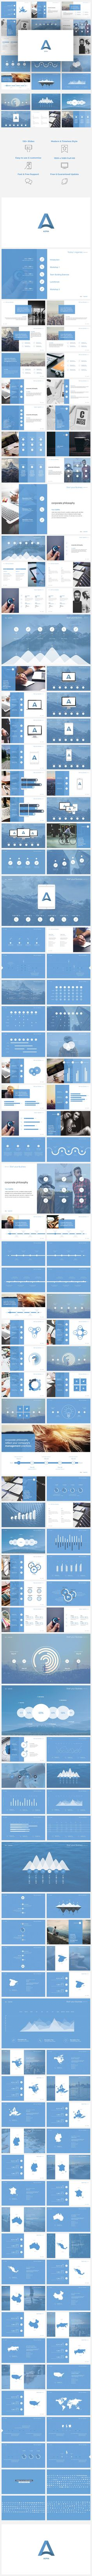 Alpha - Keynote Template. Download here: http://graphicriver.net/item/alpha-keynote/15932436?ref=ksioks